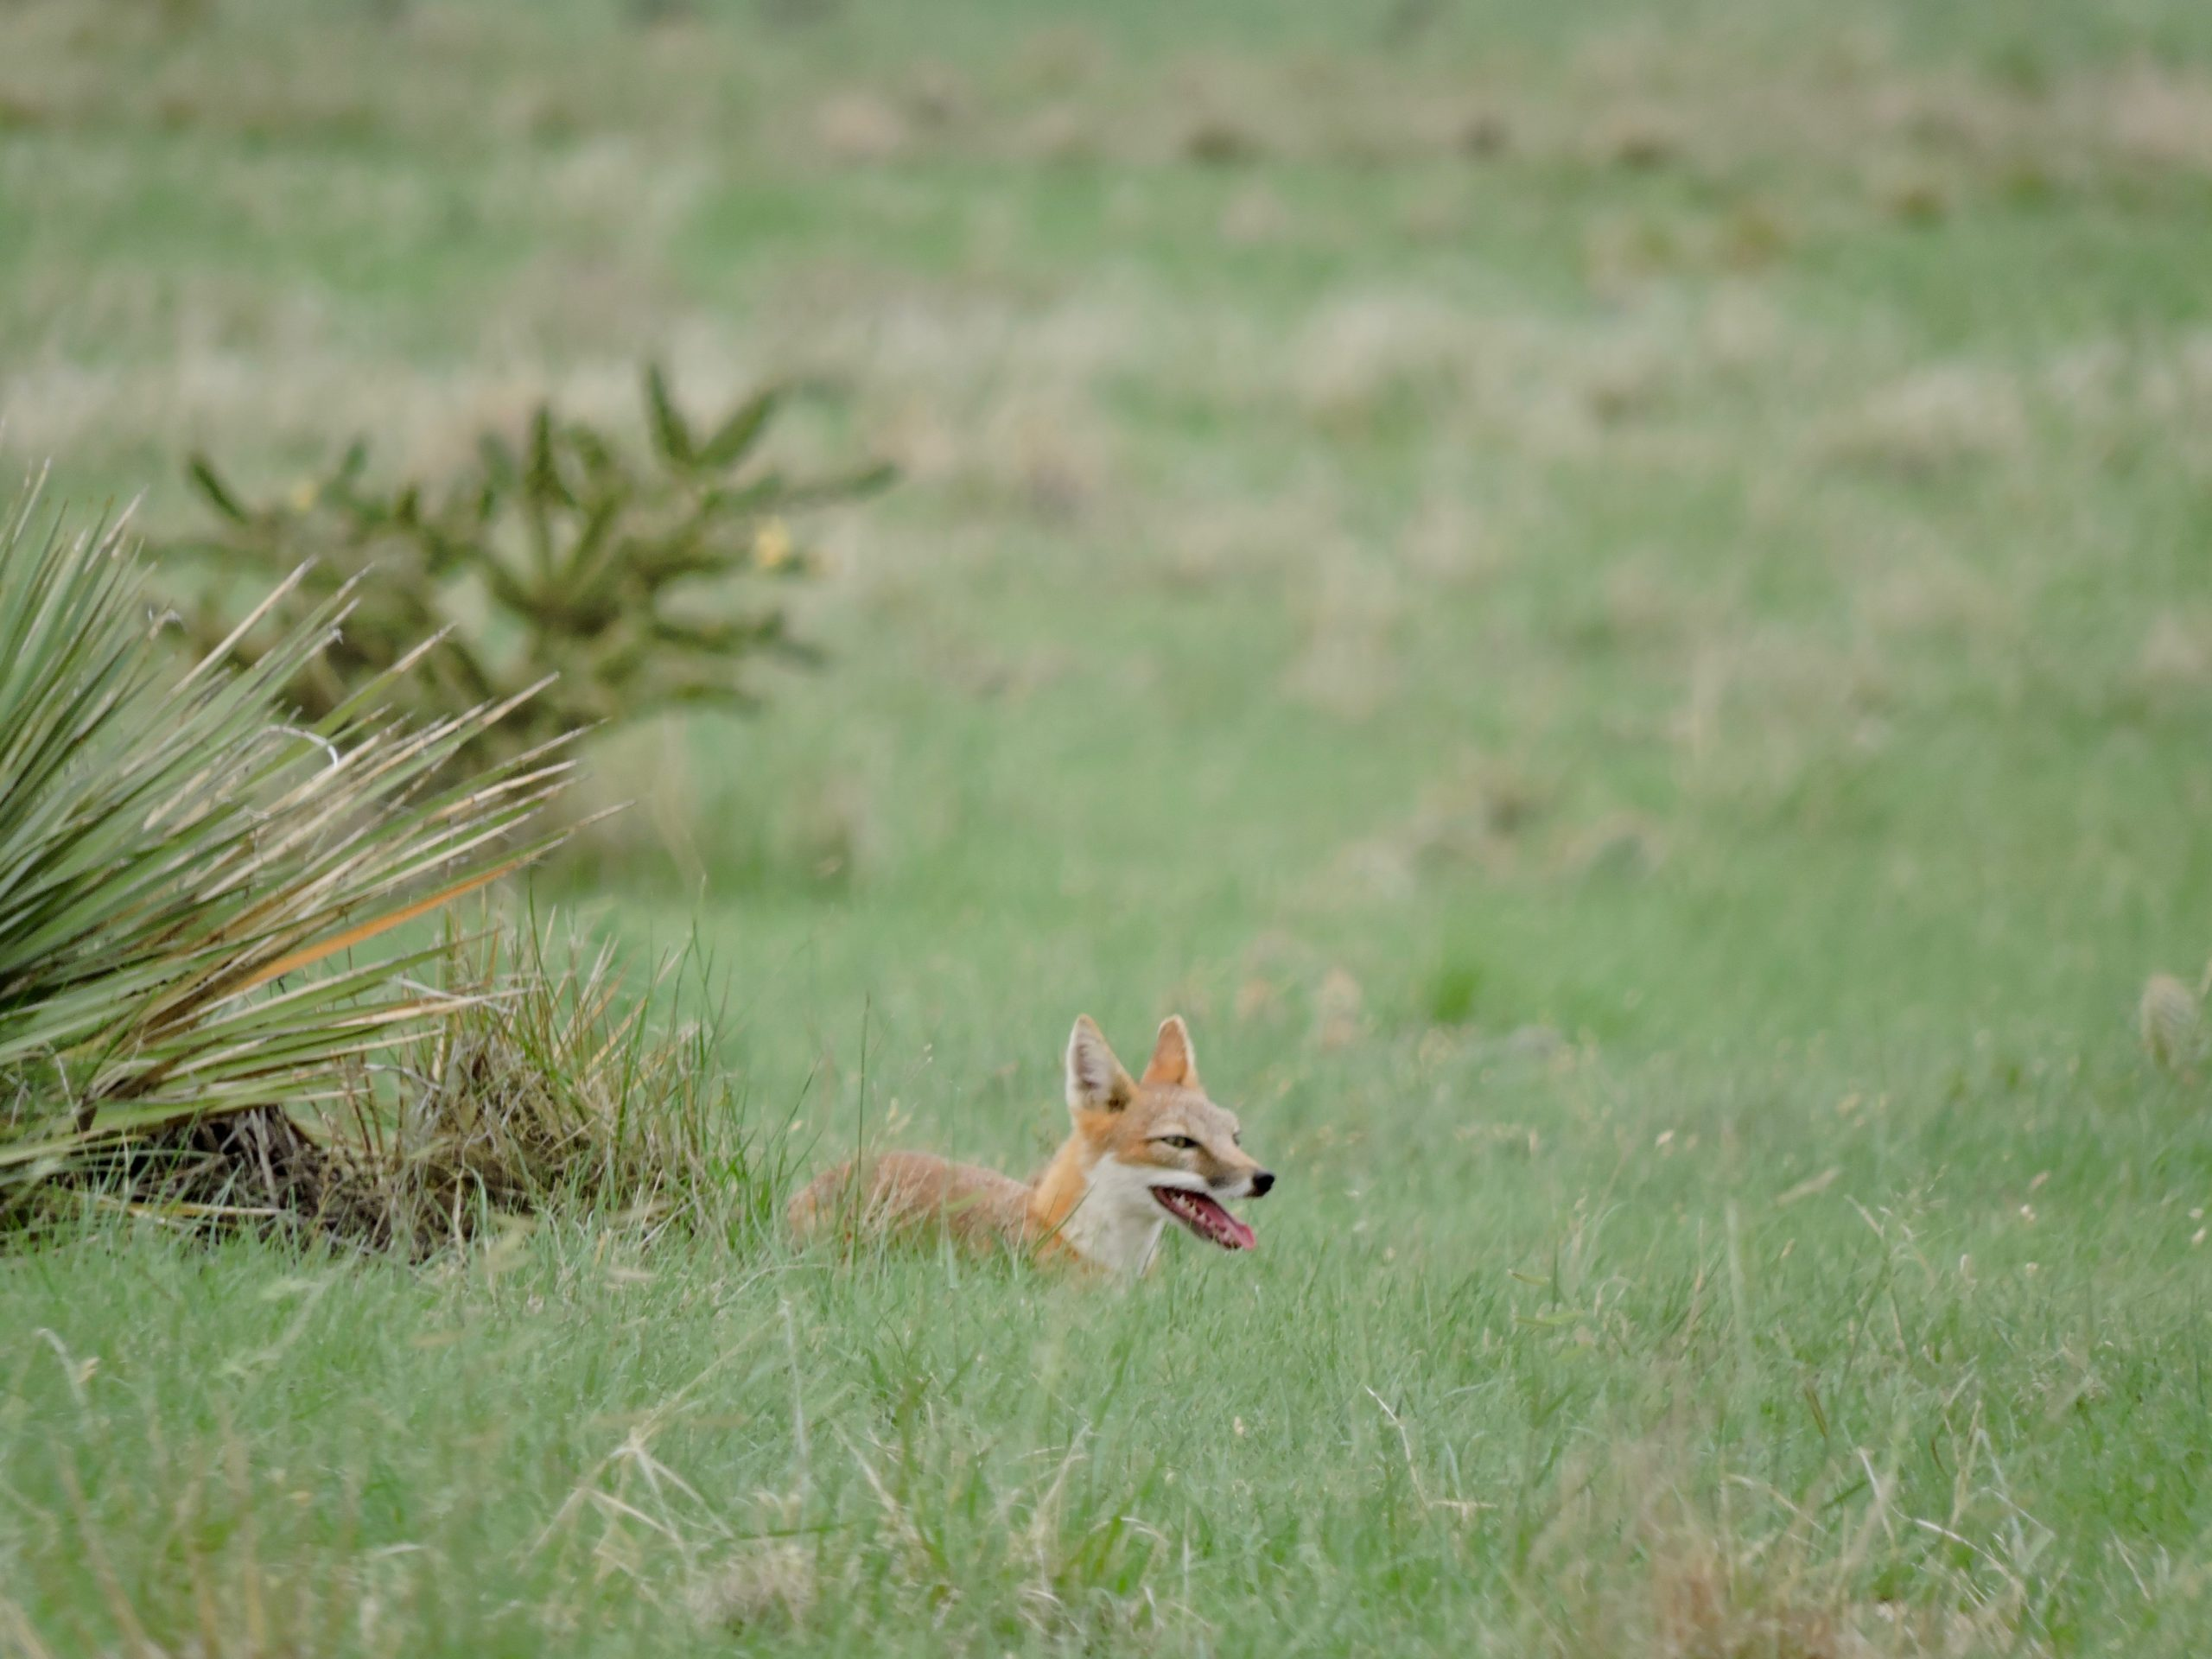 Swift fox on Medford (CREDIT SPLT)